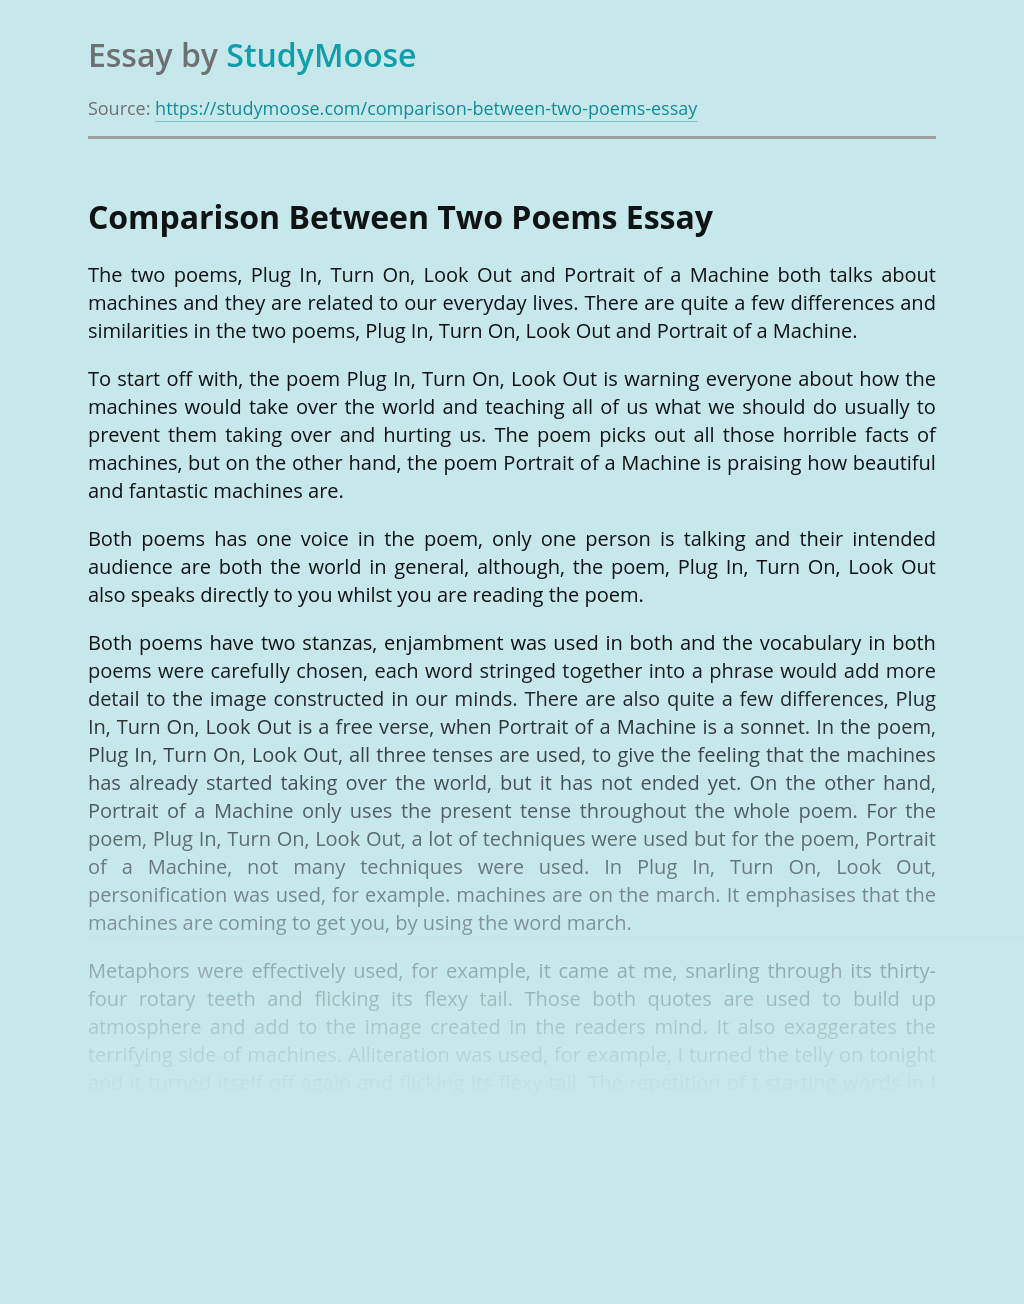 Comparison Between Two Poems